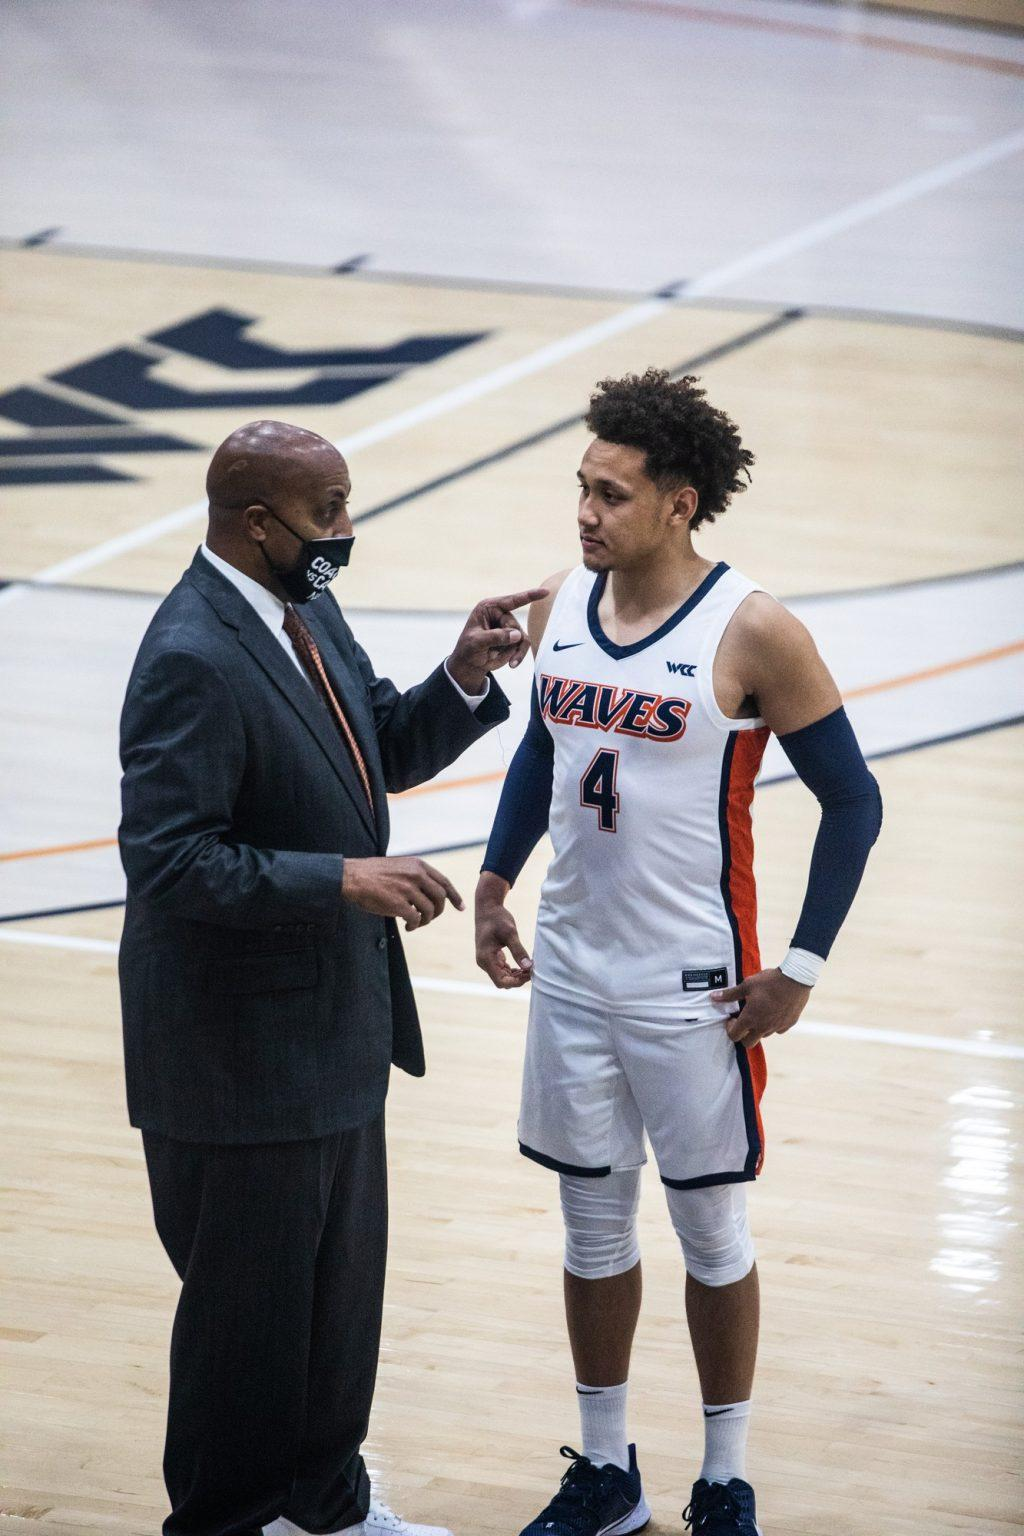 Head Coach Lorenzo Romar instructs Ross during BYU free throw attempts. Ross stuffed the stat sheet with 19 points, 7 rebounds, 6 assists and 2 steals.